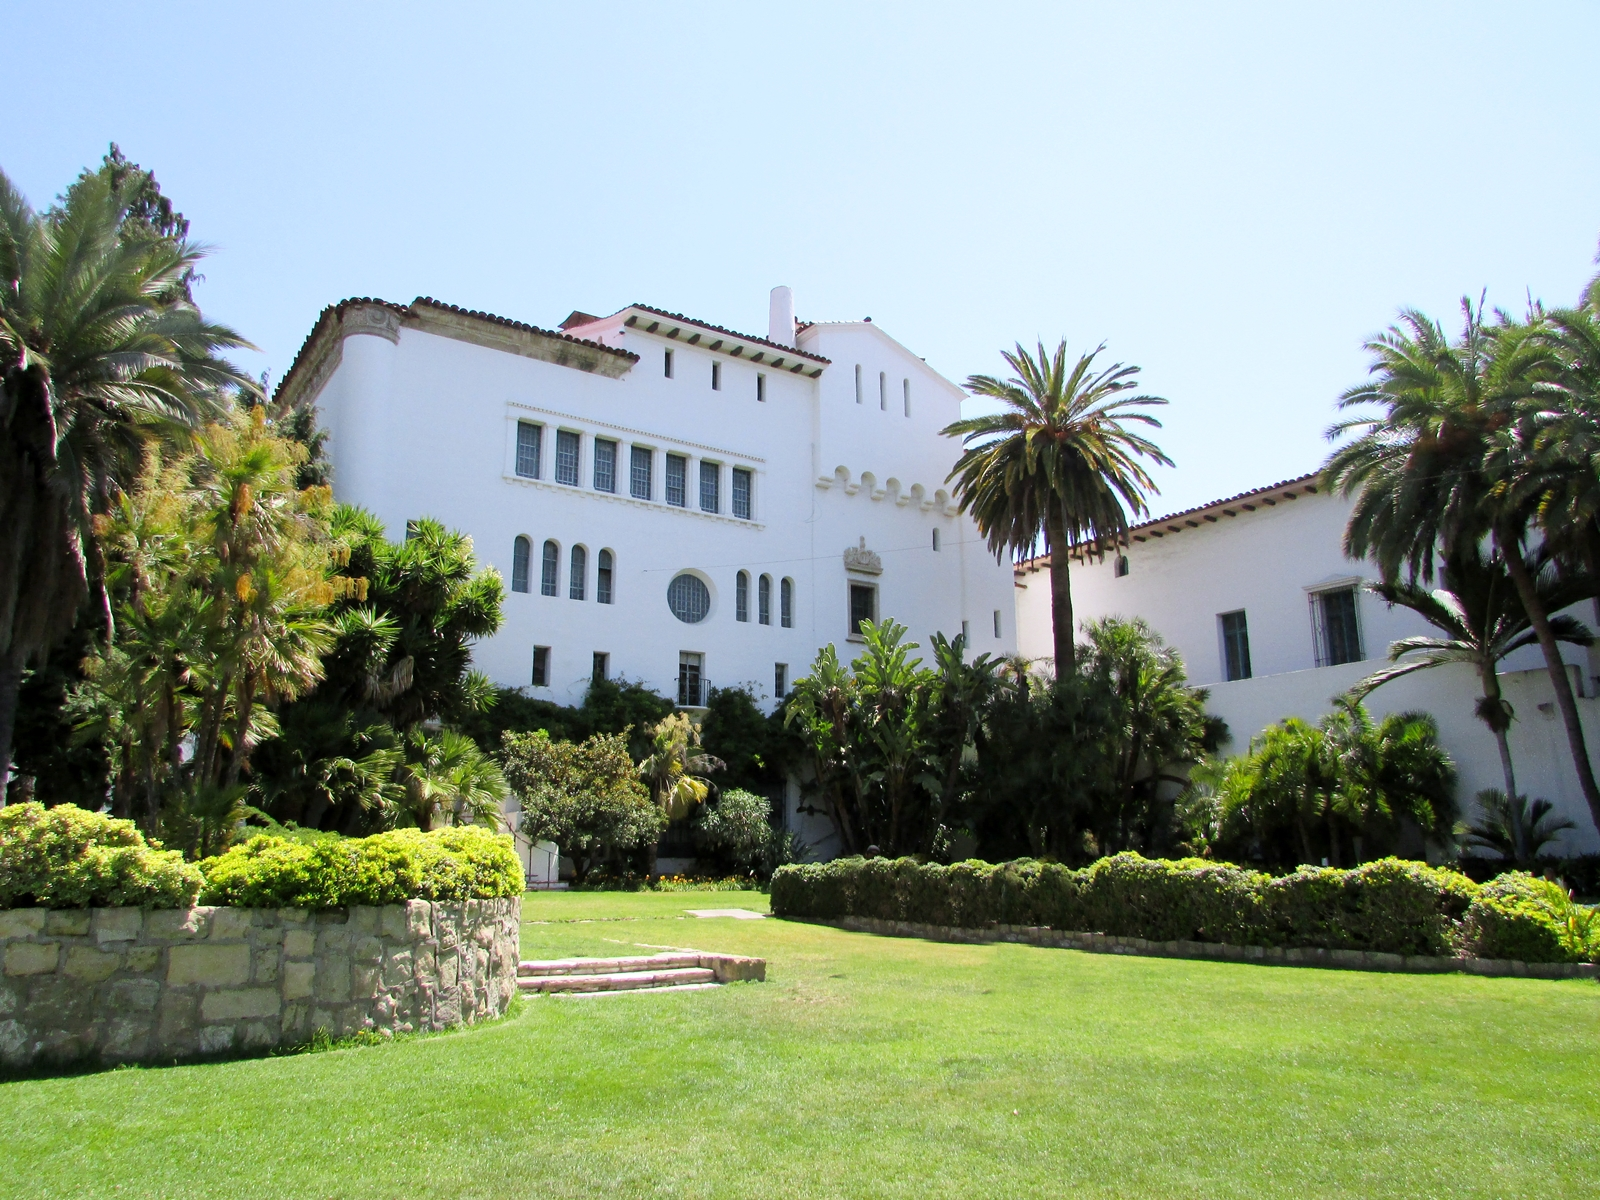 USA Rundreise - Amerika Westküste - Santa Barbara - County Courthouse - Fashionladyloves by Tamara Wagner